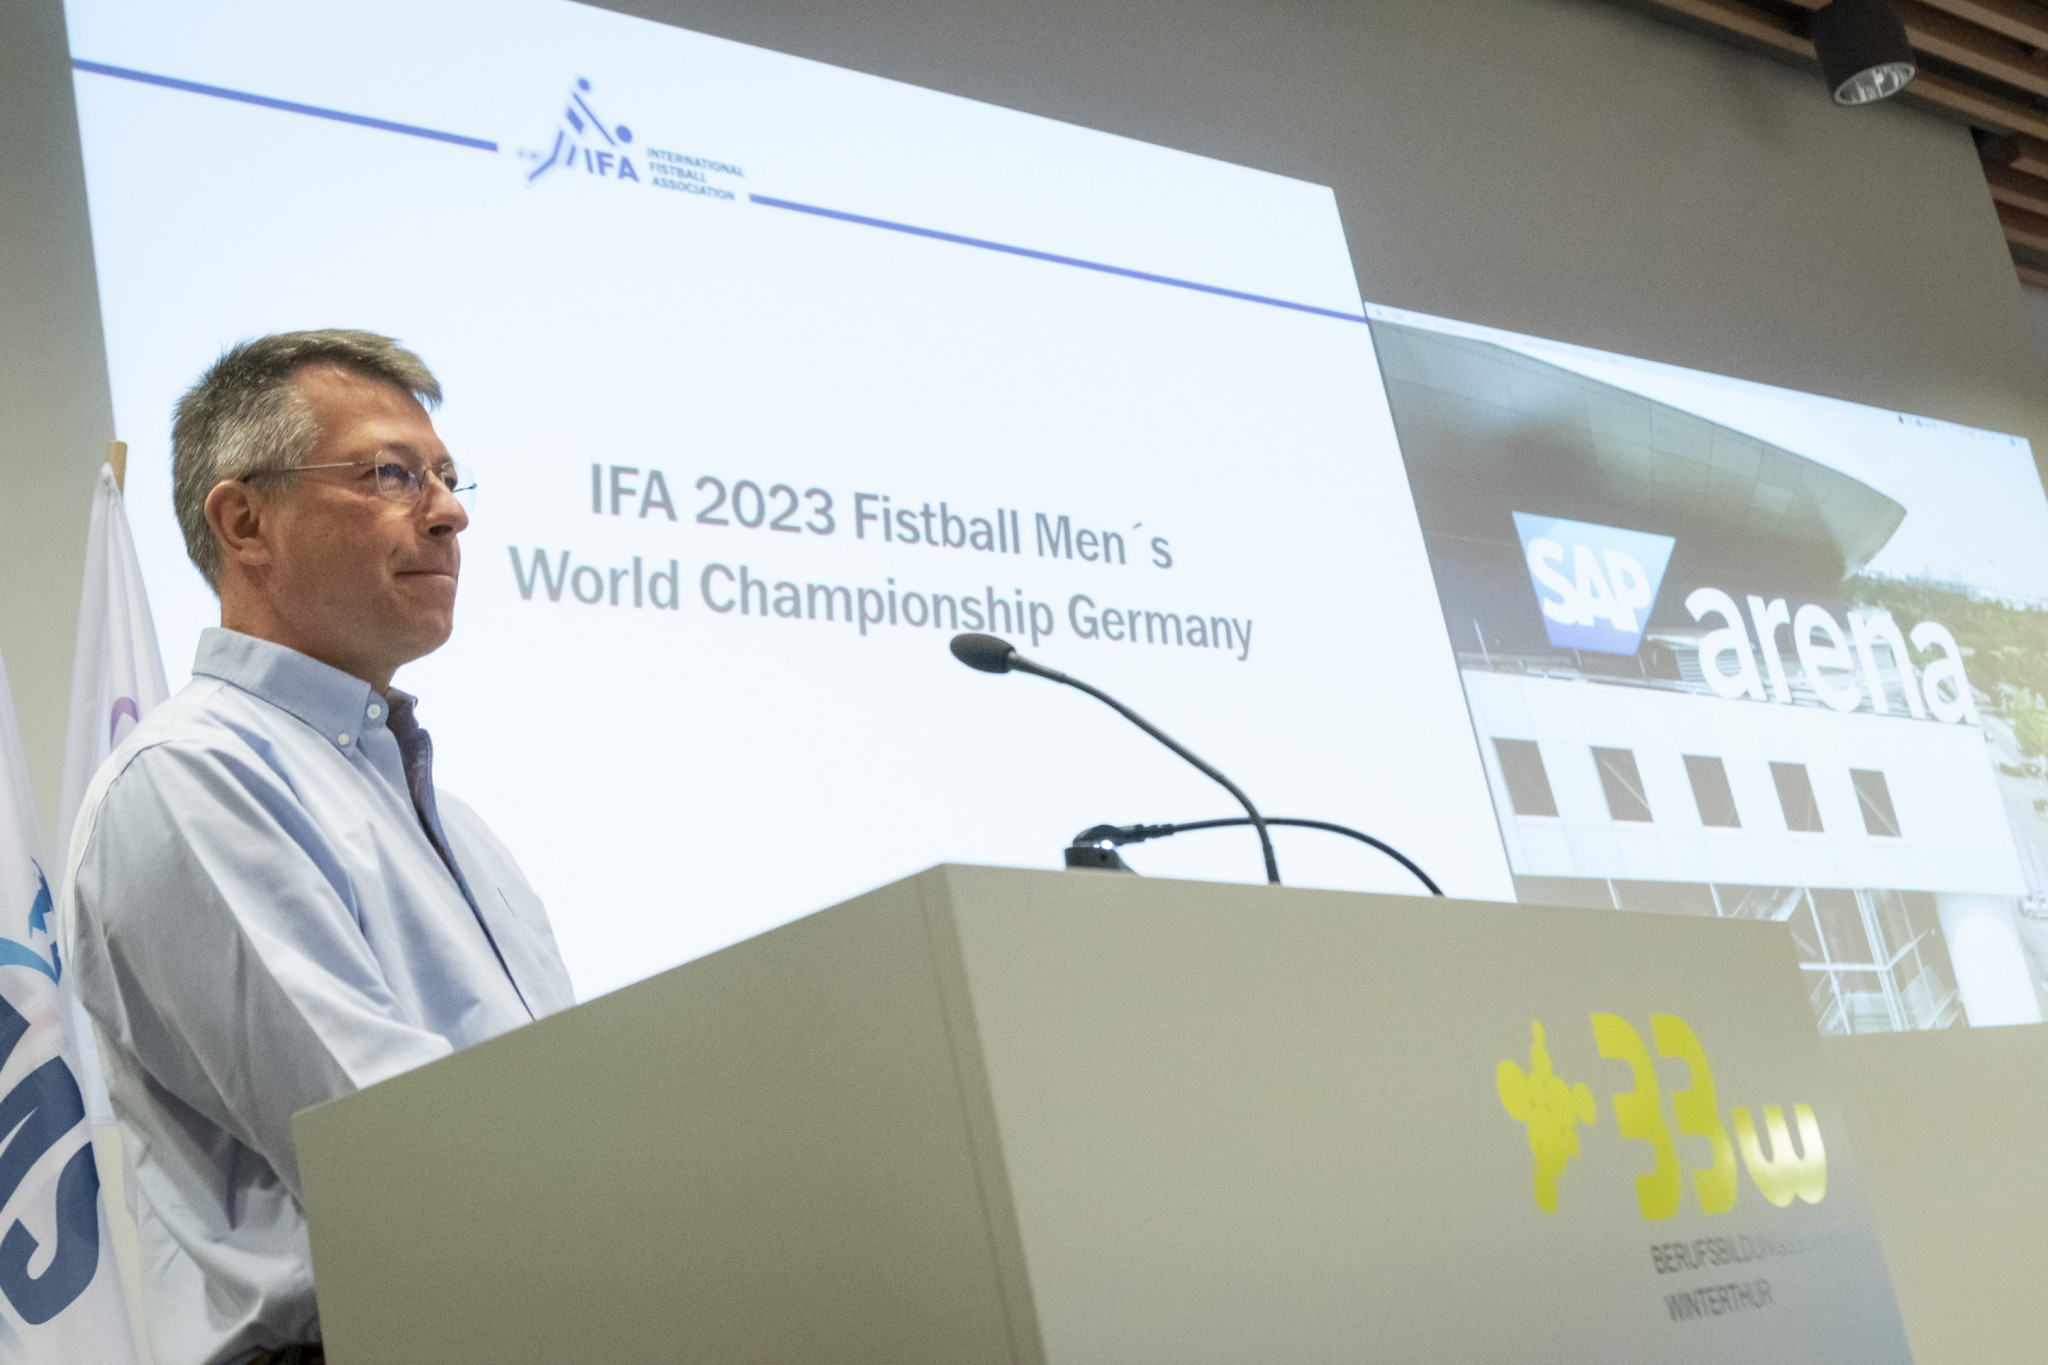 Mannheim was announced as the host city for the 2023 International Fistball Association Men's World Fistball Championship at the IFA Congress in Winterthur in Switzerland ©IFA